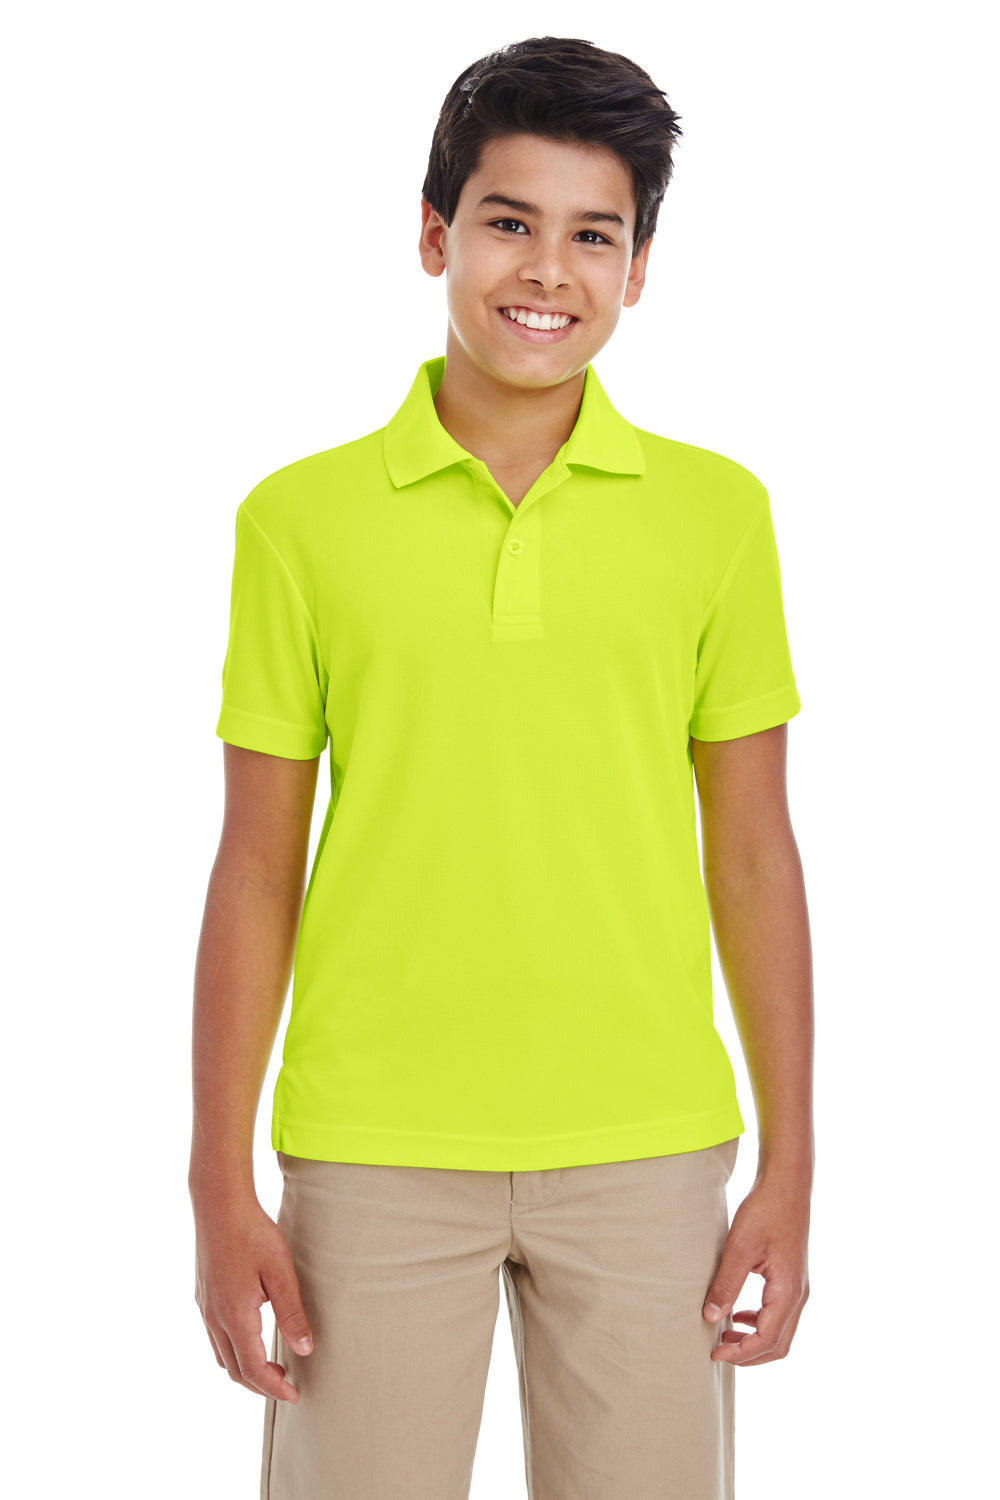 Core 365 88181Y Youth Origin Performance Moisture Wicking Short Sleeve Polo Shirt Safety Yellow Front